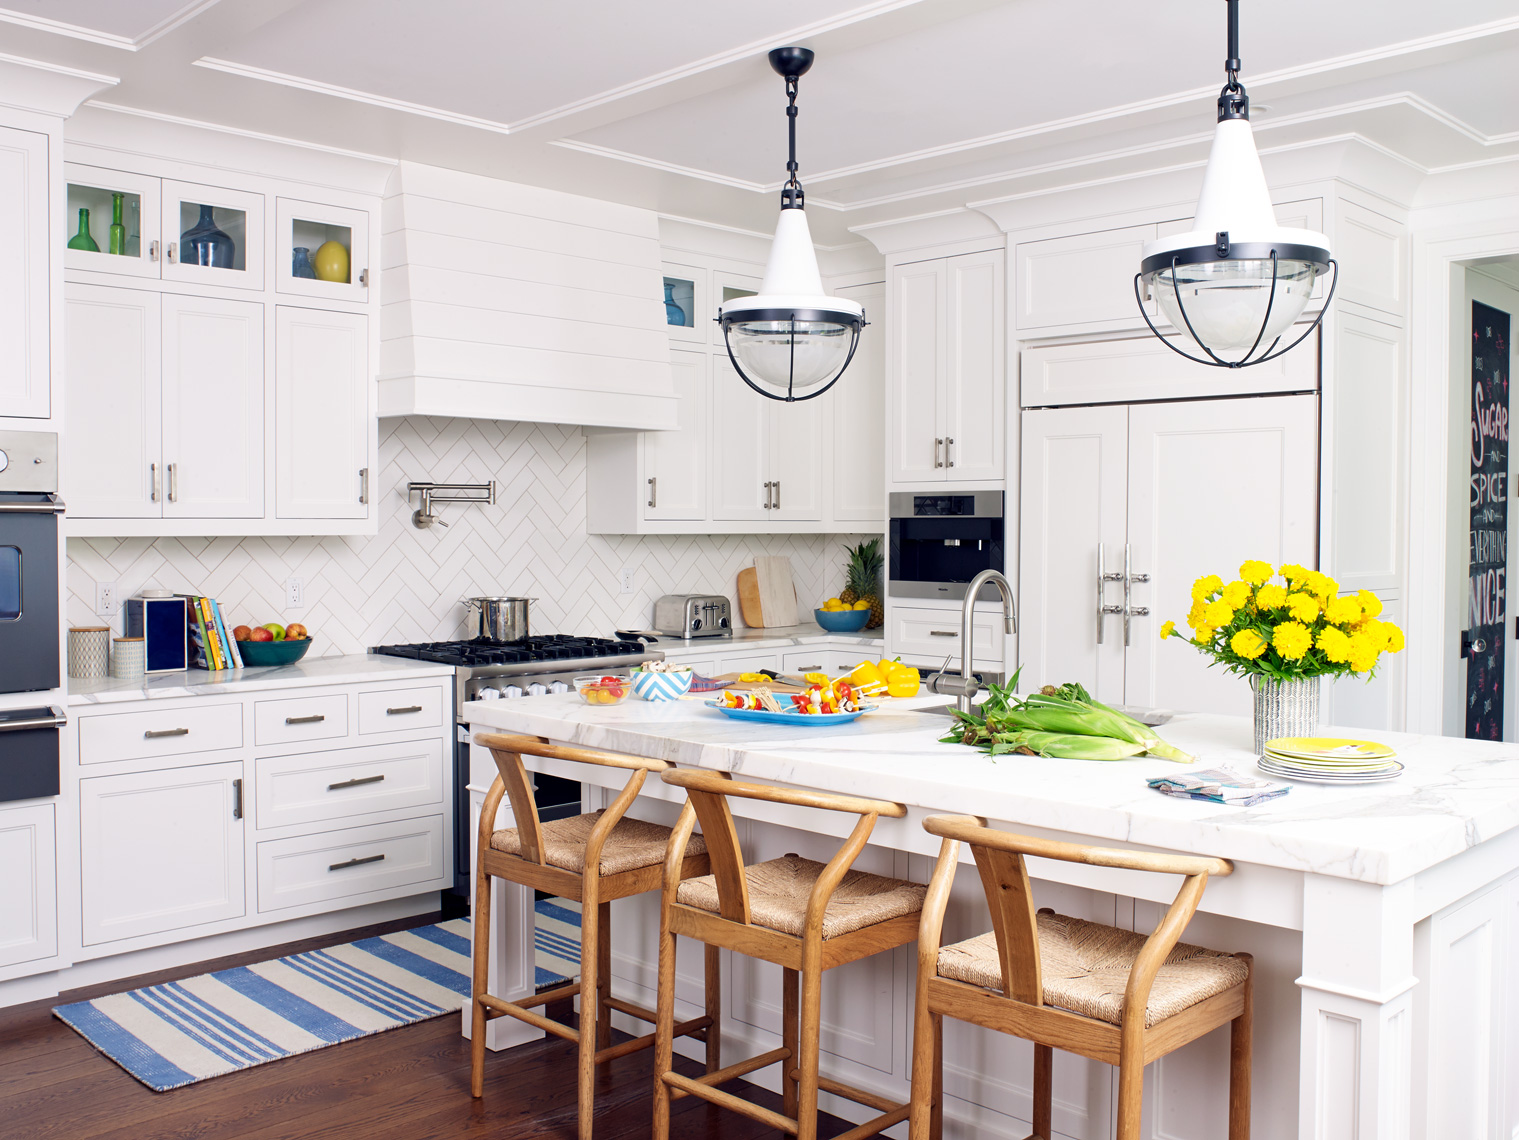 ARowley_HGTV_Hogue_WestportCT_Kitchen48728_ret_APF